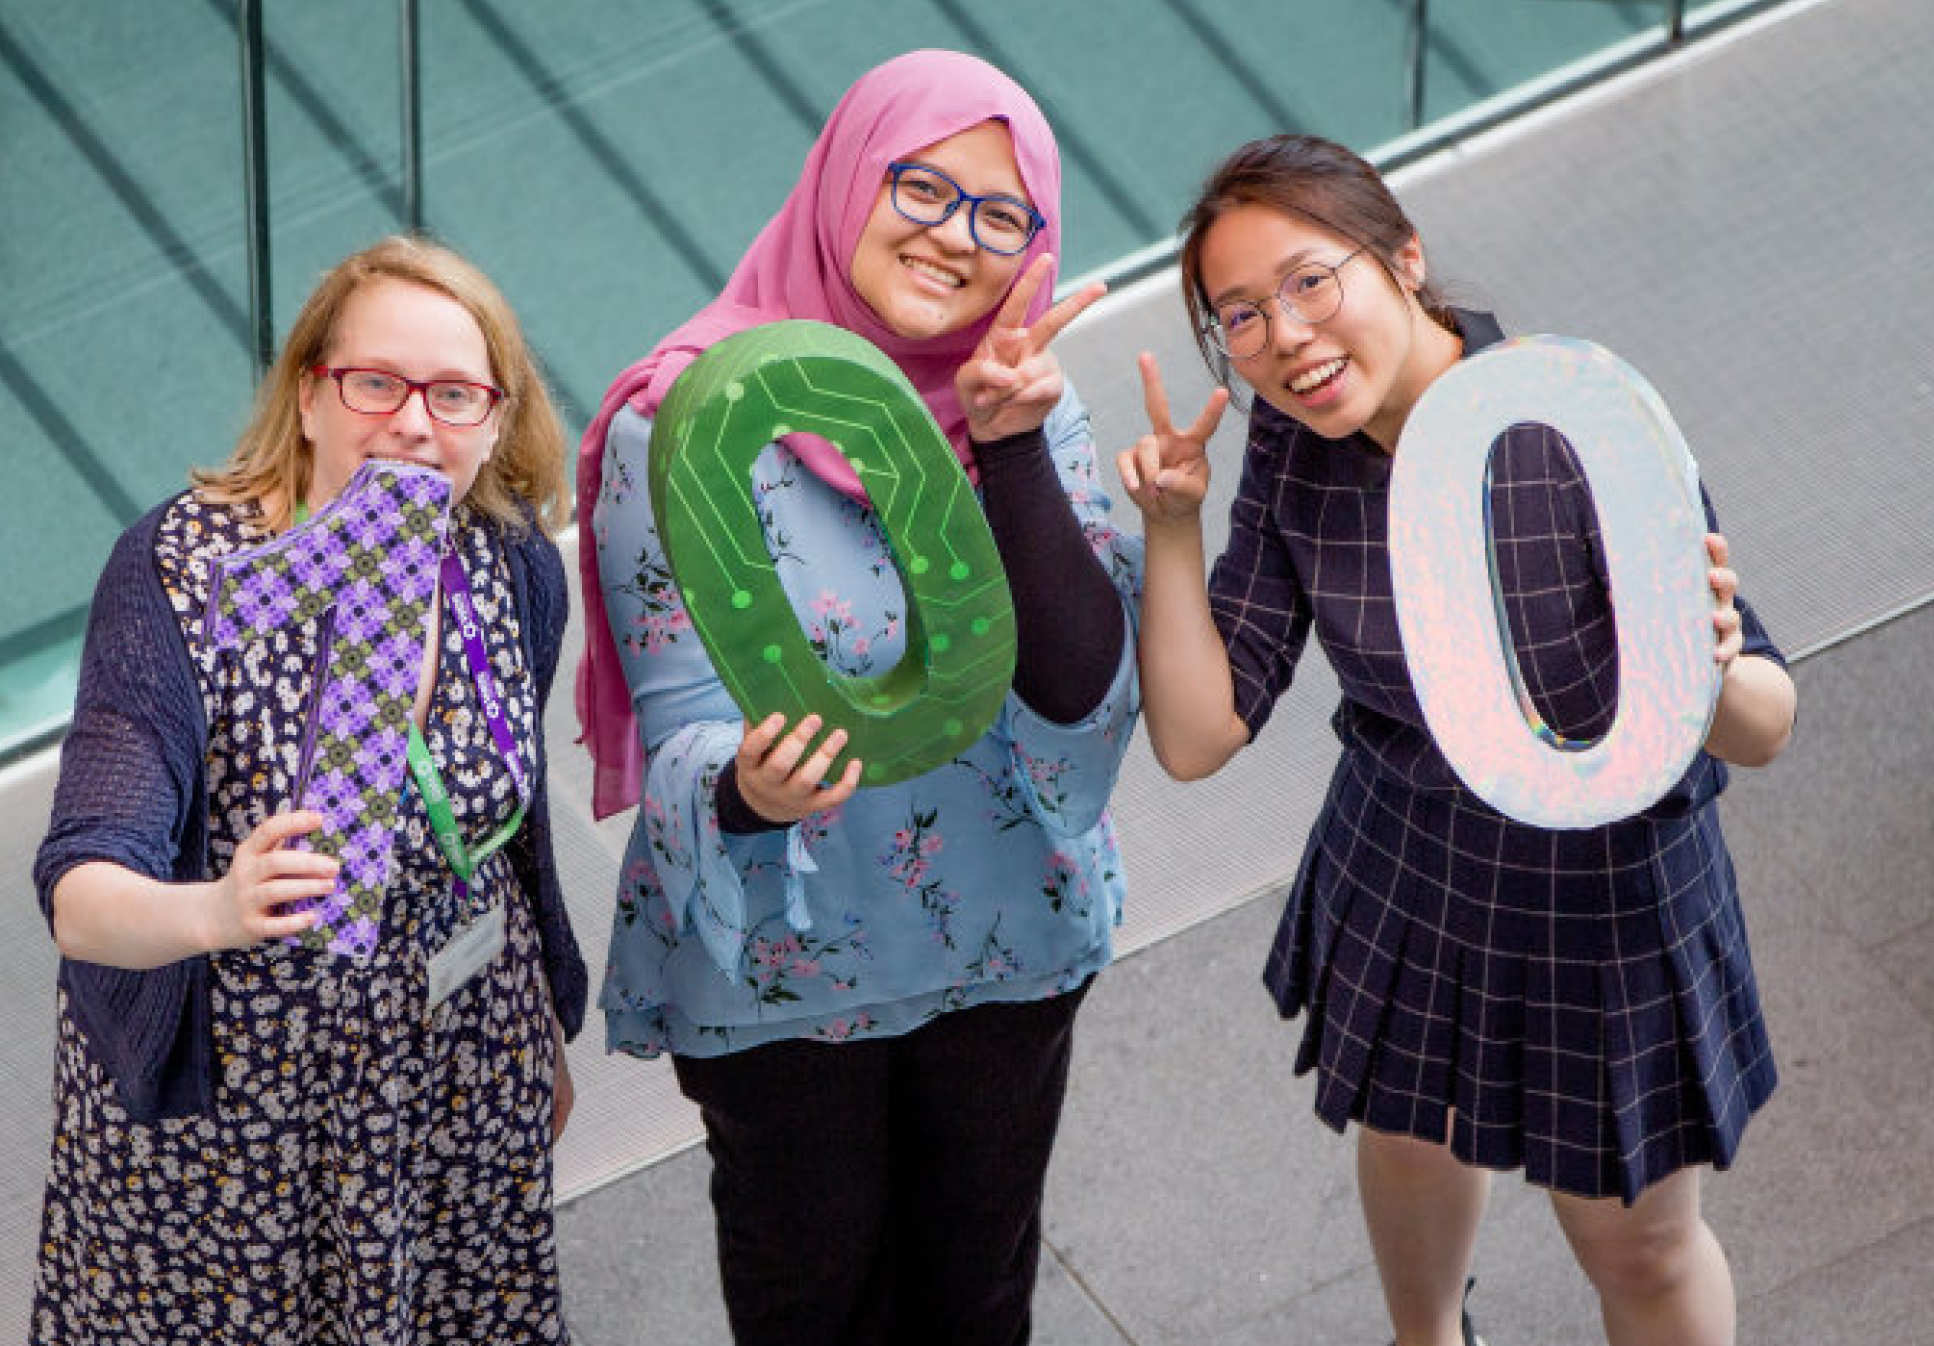 Imperial staff and students celebrate 100 years of the Women's Engineering Society